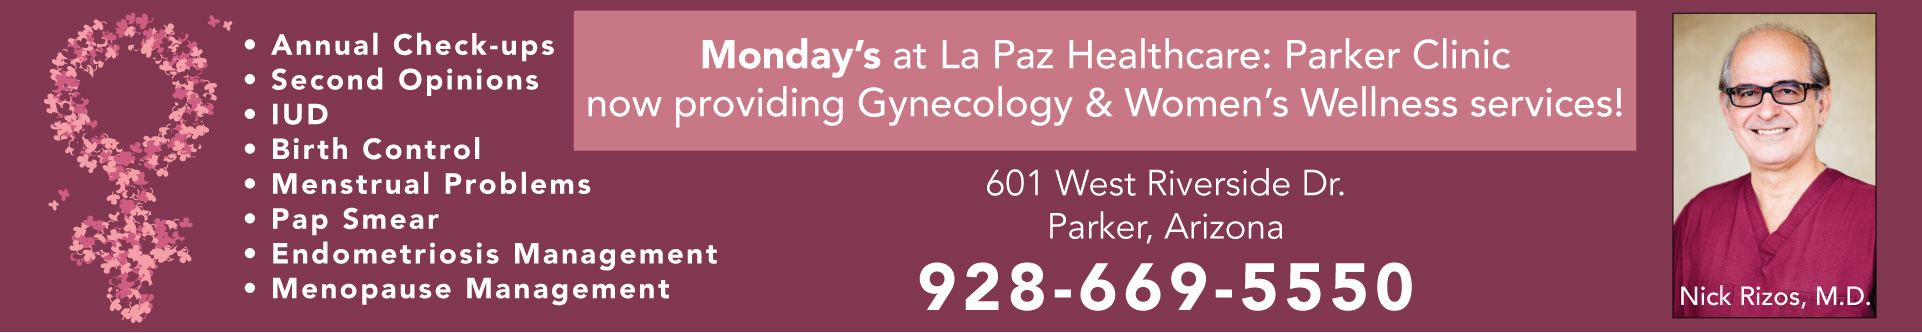 A photo of a smiling Nick Rizos, M.D., Monday's at La Paz Healthcare: Parker Clinic now providing Gynecology & Women's Wellness services! Address is 601 West Riverside Dr., Parker, Arizona. Contact number is 928-669-5550. Services include annual check-ups, second opinions, IUD, birth control, menstrual problems, pap smear, endometriosis management, and menopause management.